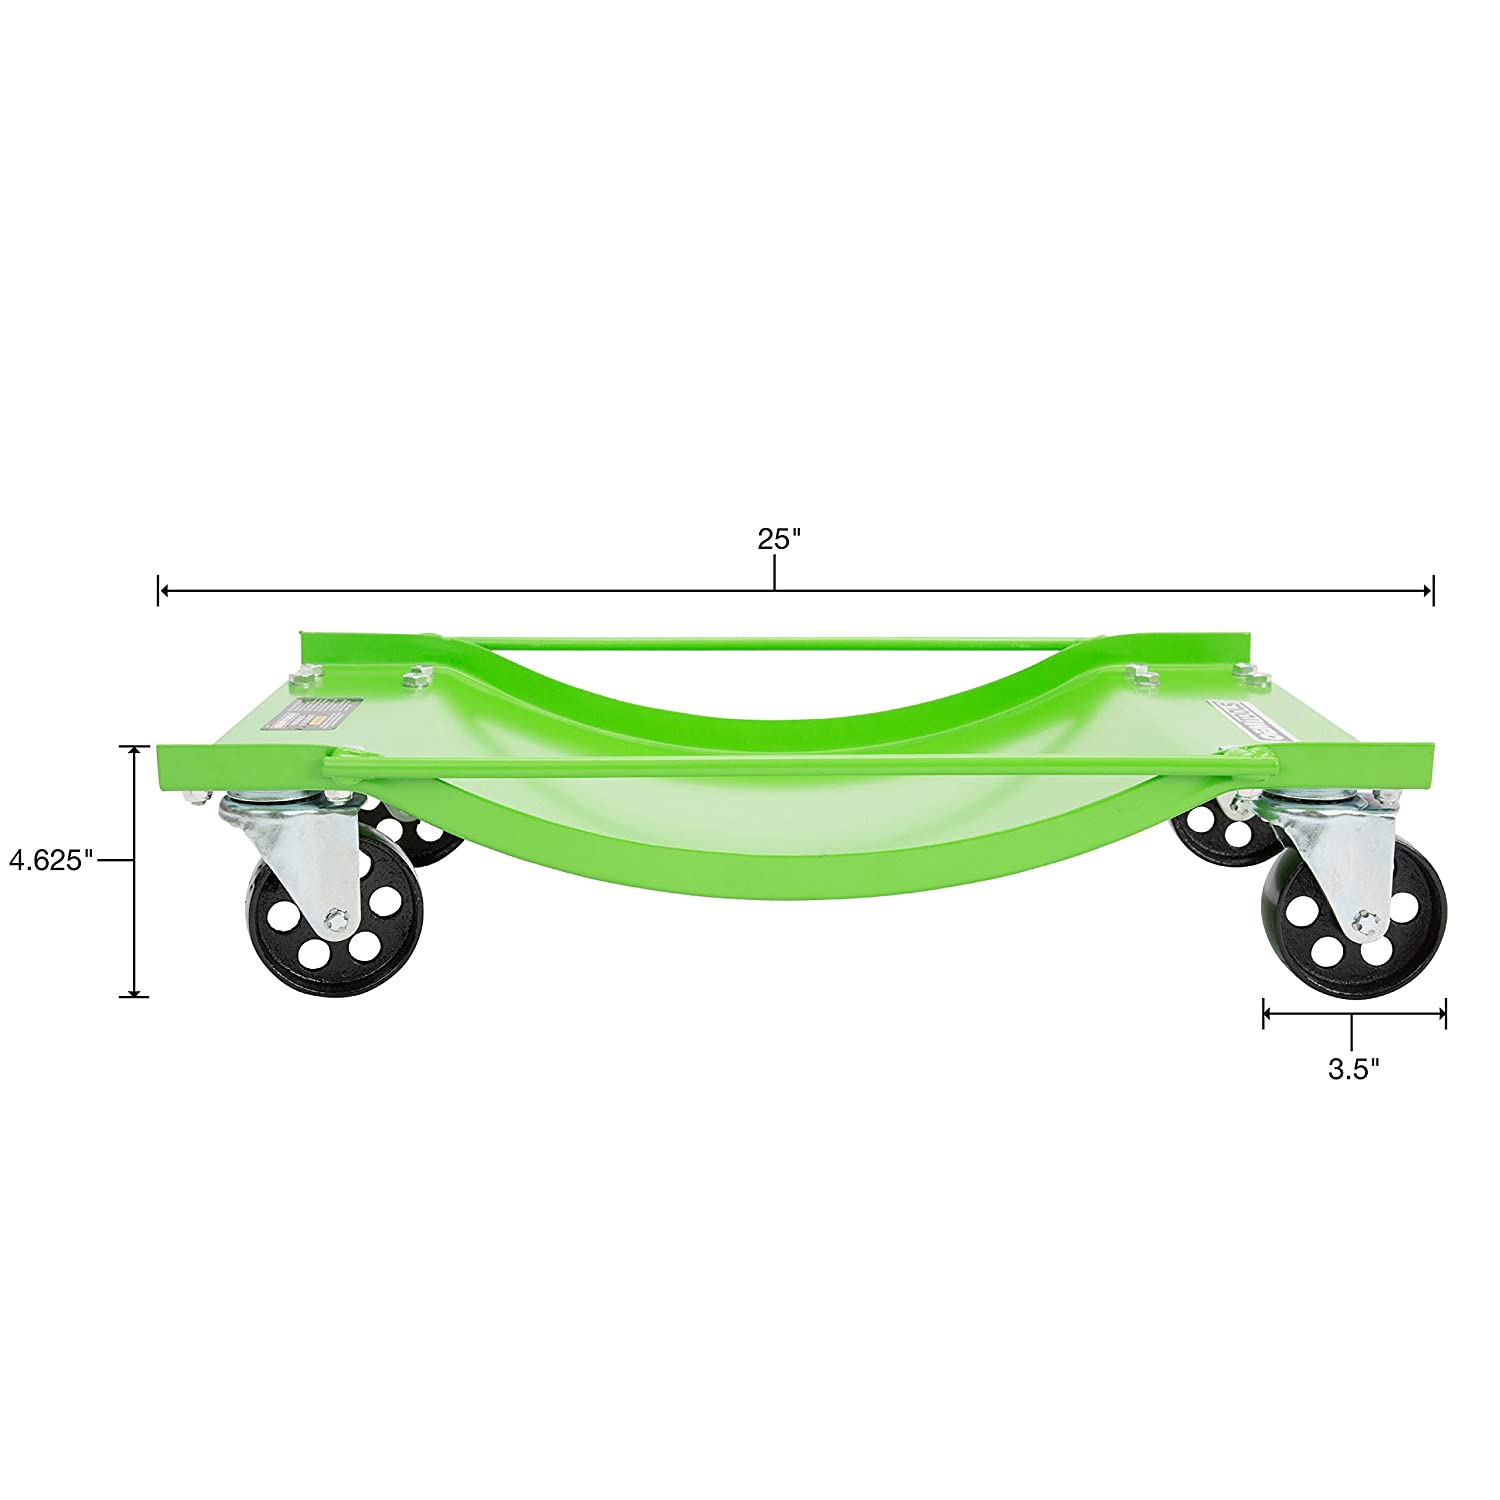 Pair OEMTOOLS 24857 Vehicle Dolly 43102 Ton Capacity